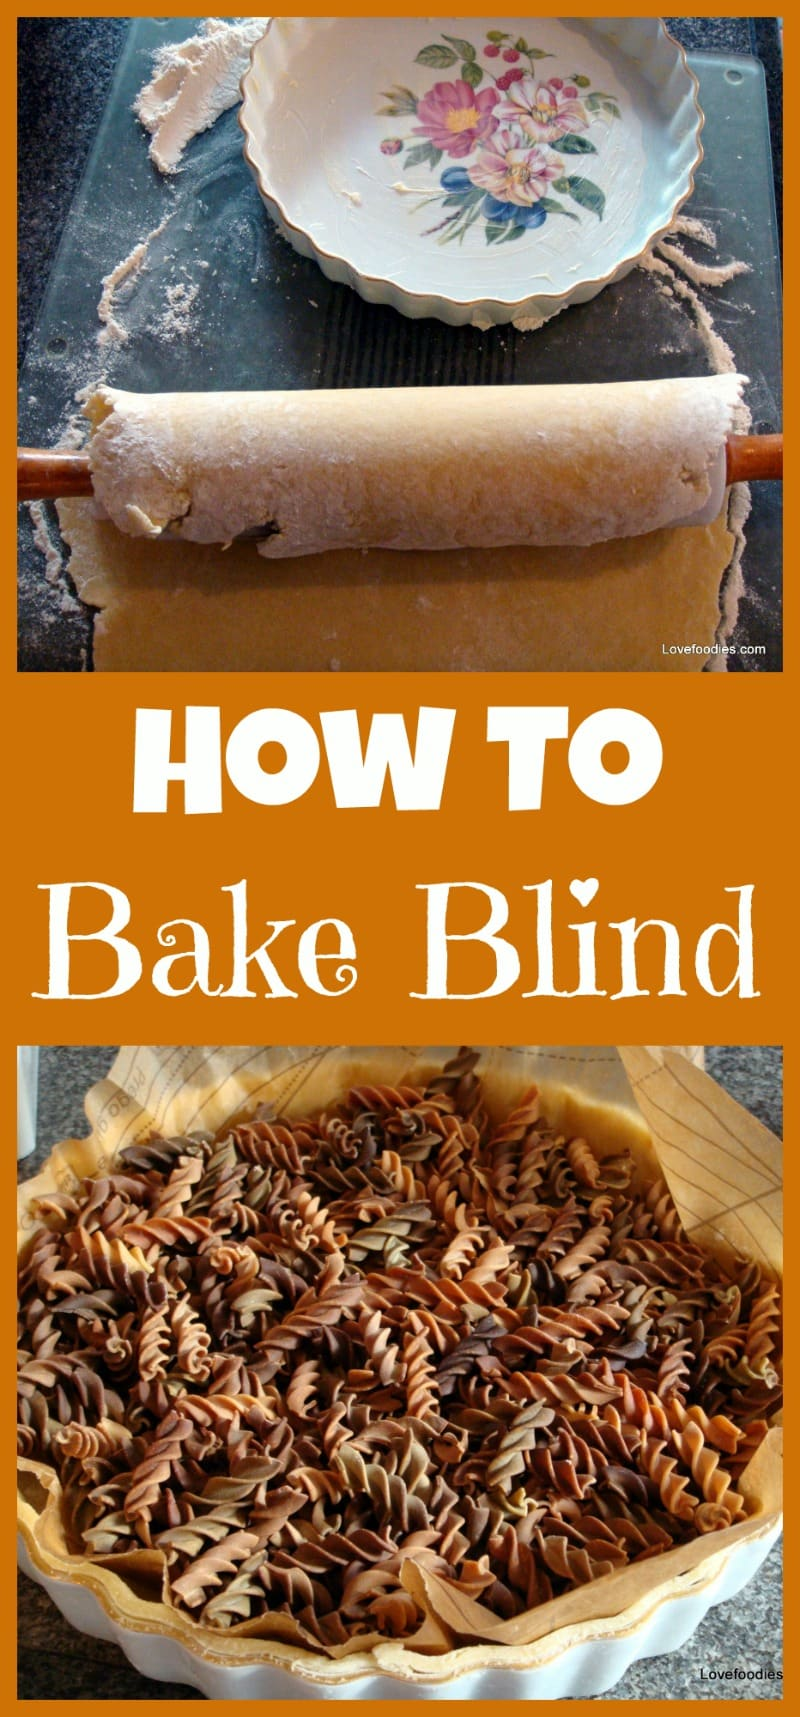 How To 'Bake Blind' Pastry. An easy step by step guide for preparing a pastry crust for filling.